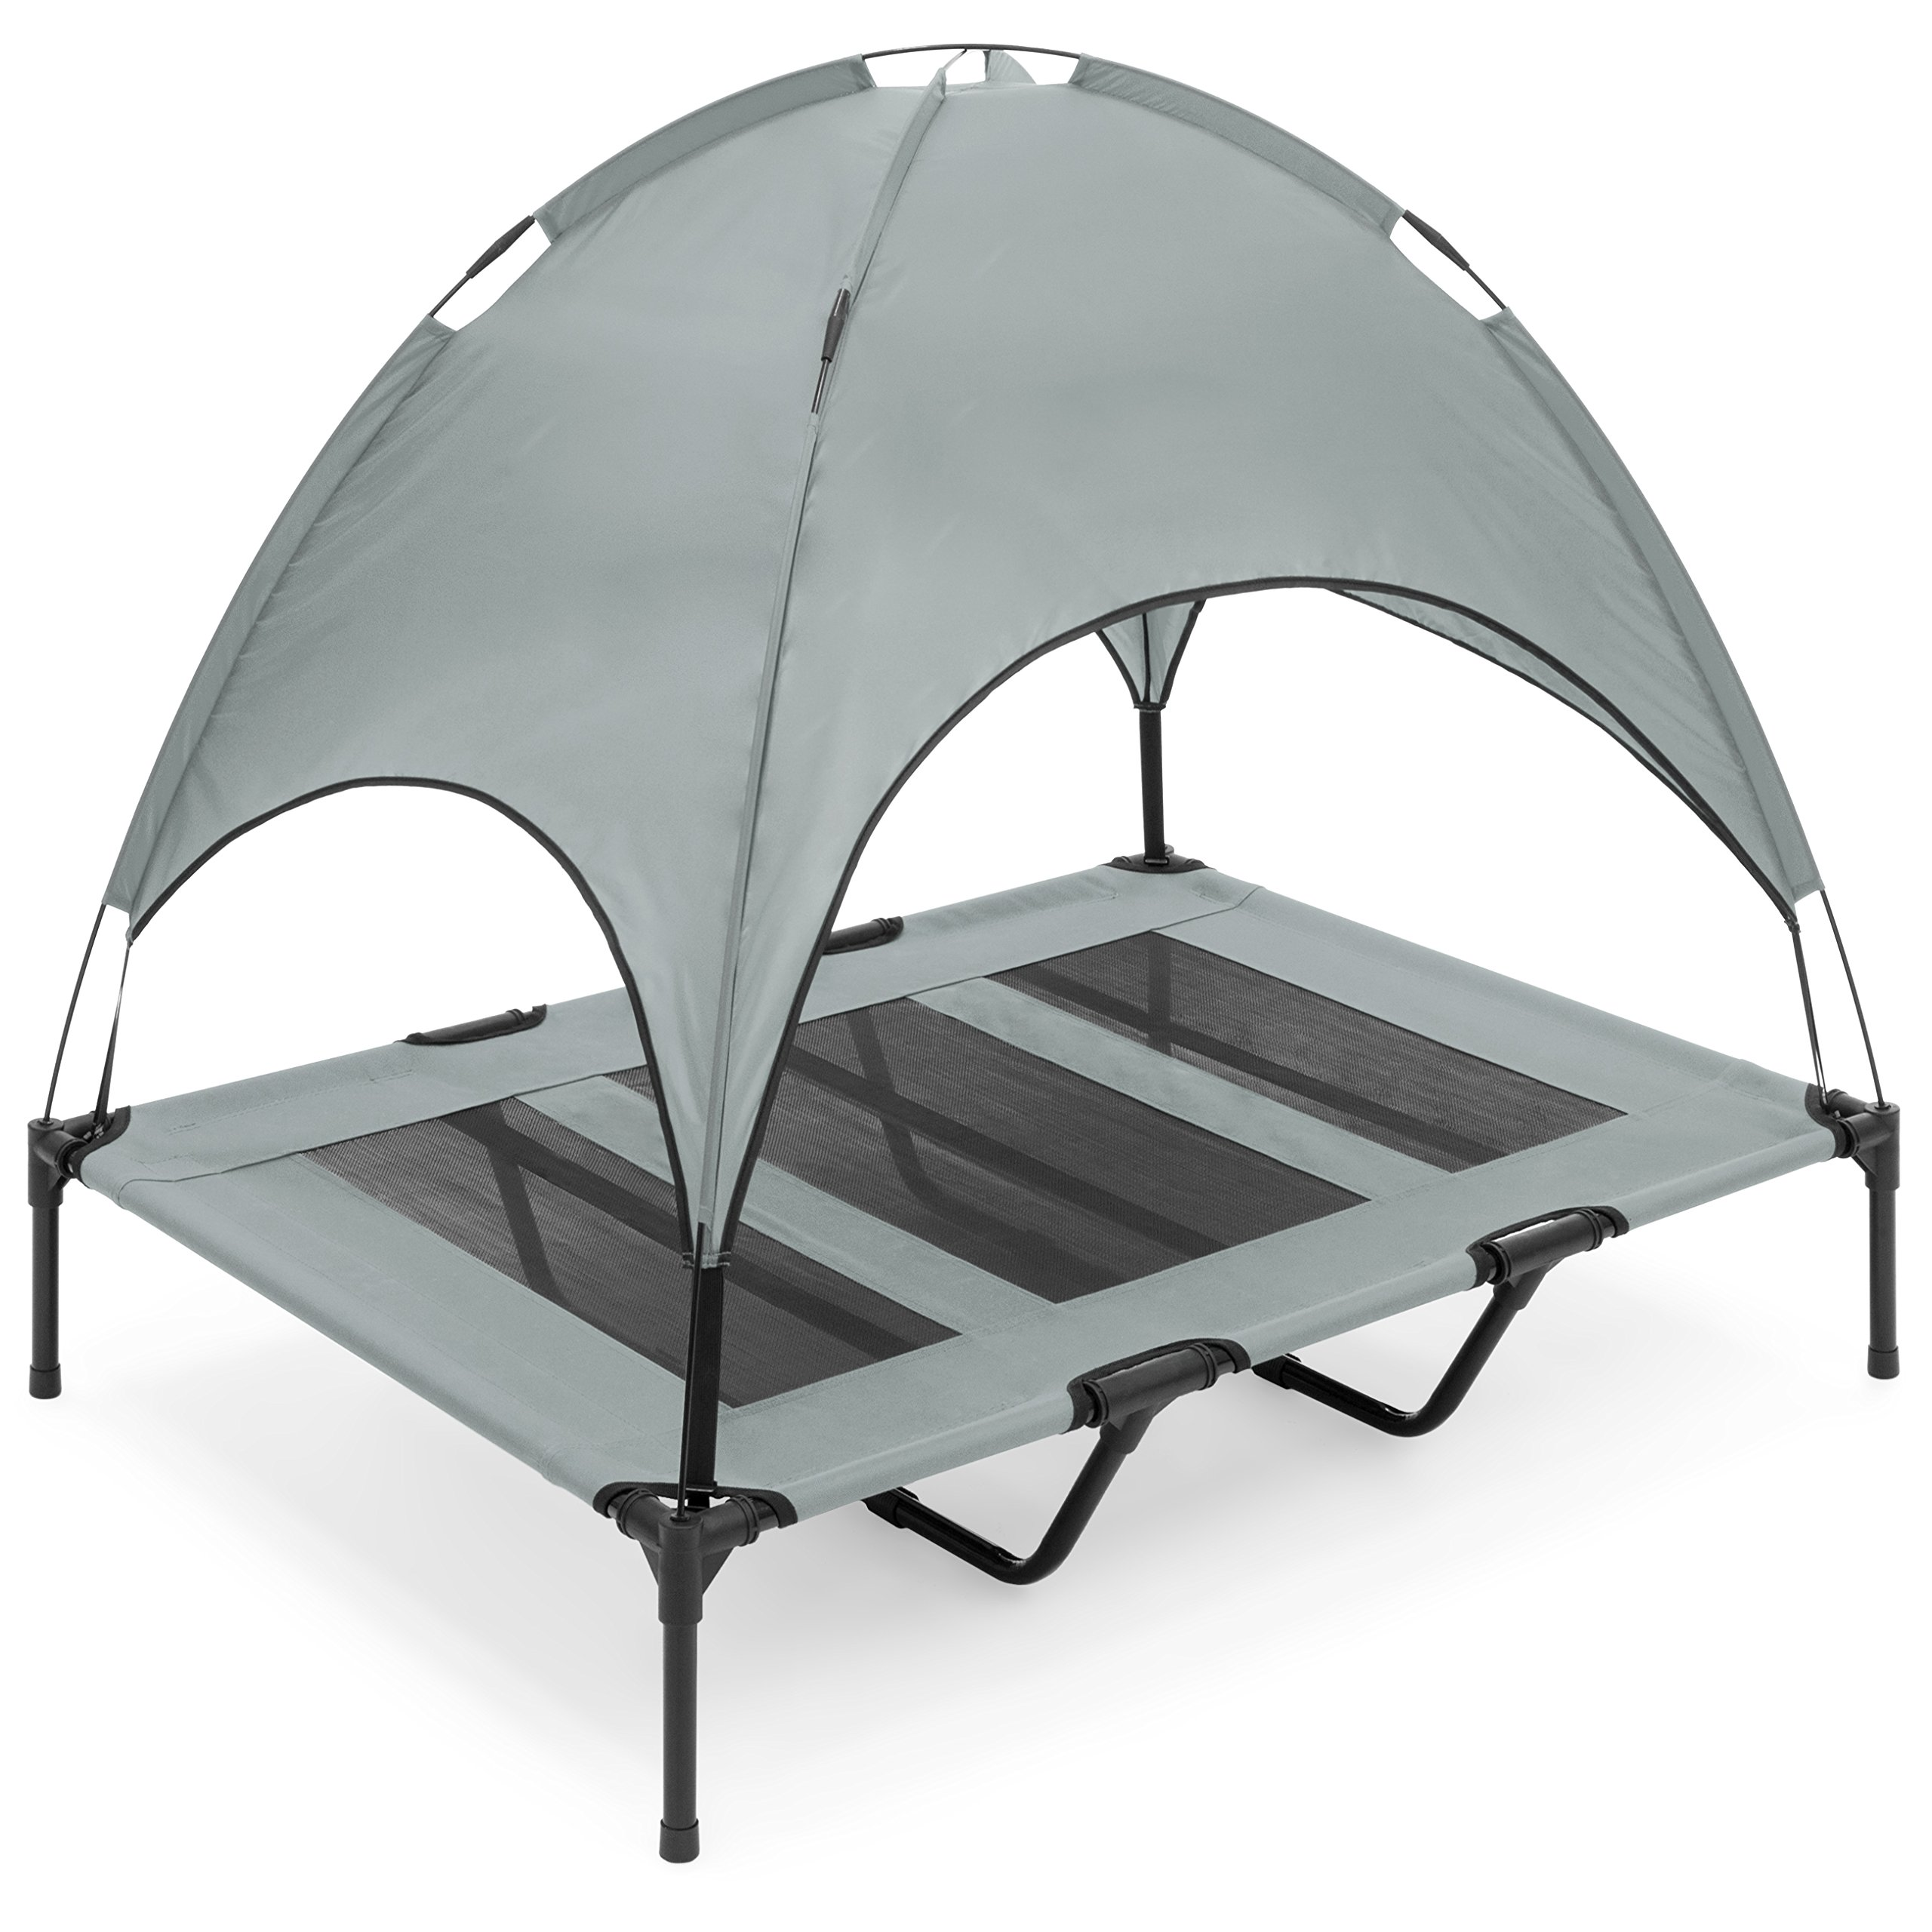 Best Choice Products Raised Mesh Cot Cooling Dog Bed, 48in, Gray, with Removable Canopy Shade Tent, Travel Bag, Breathable Fabric